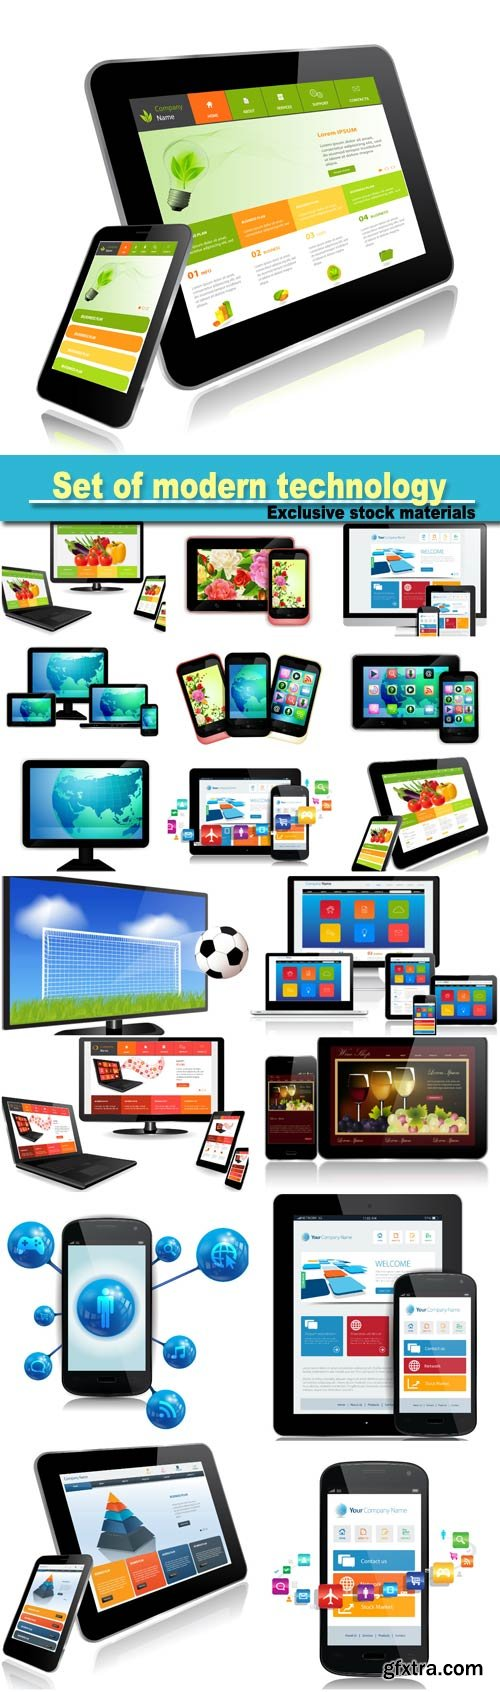 Set of modern technology vector